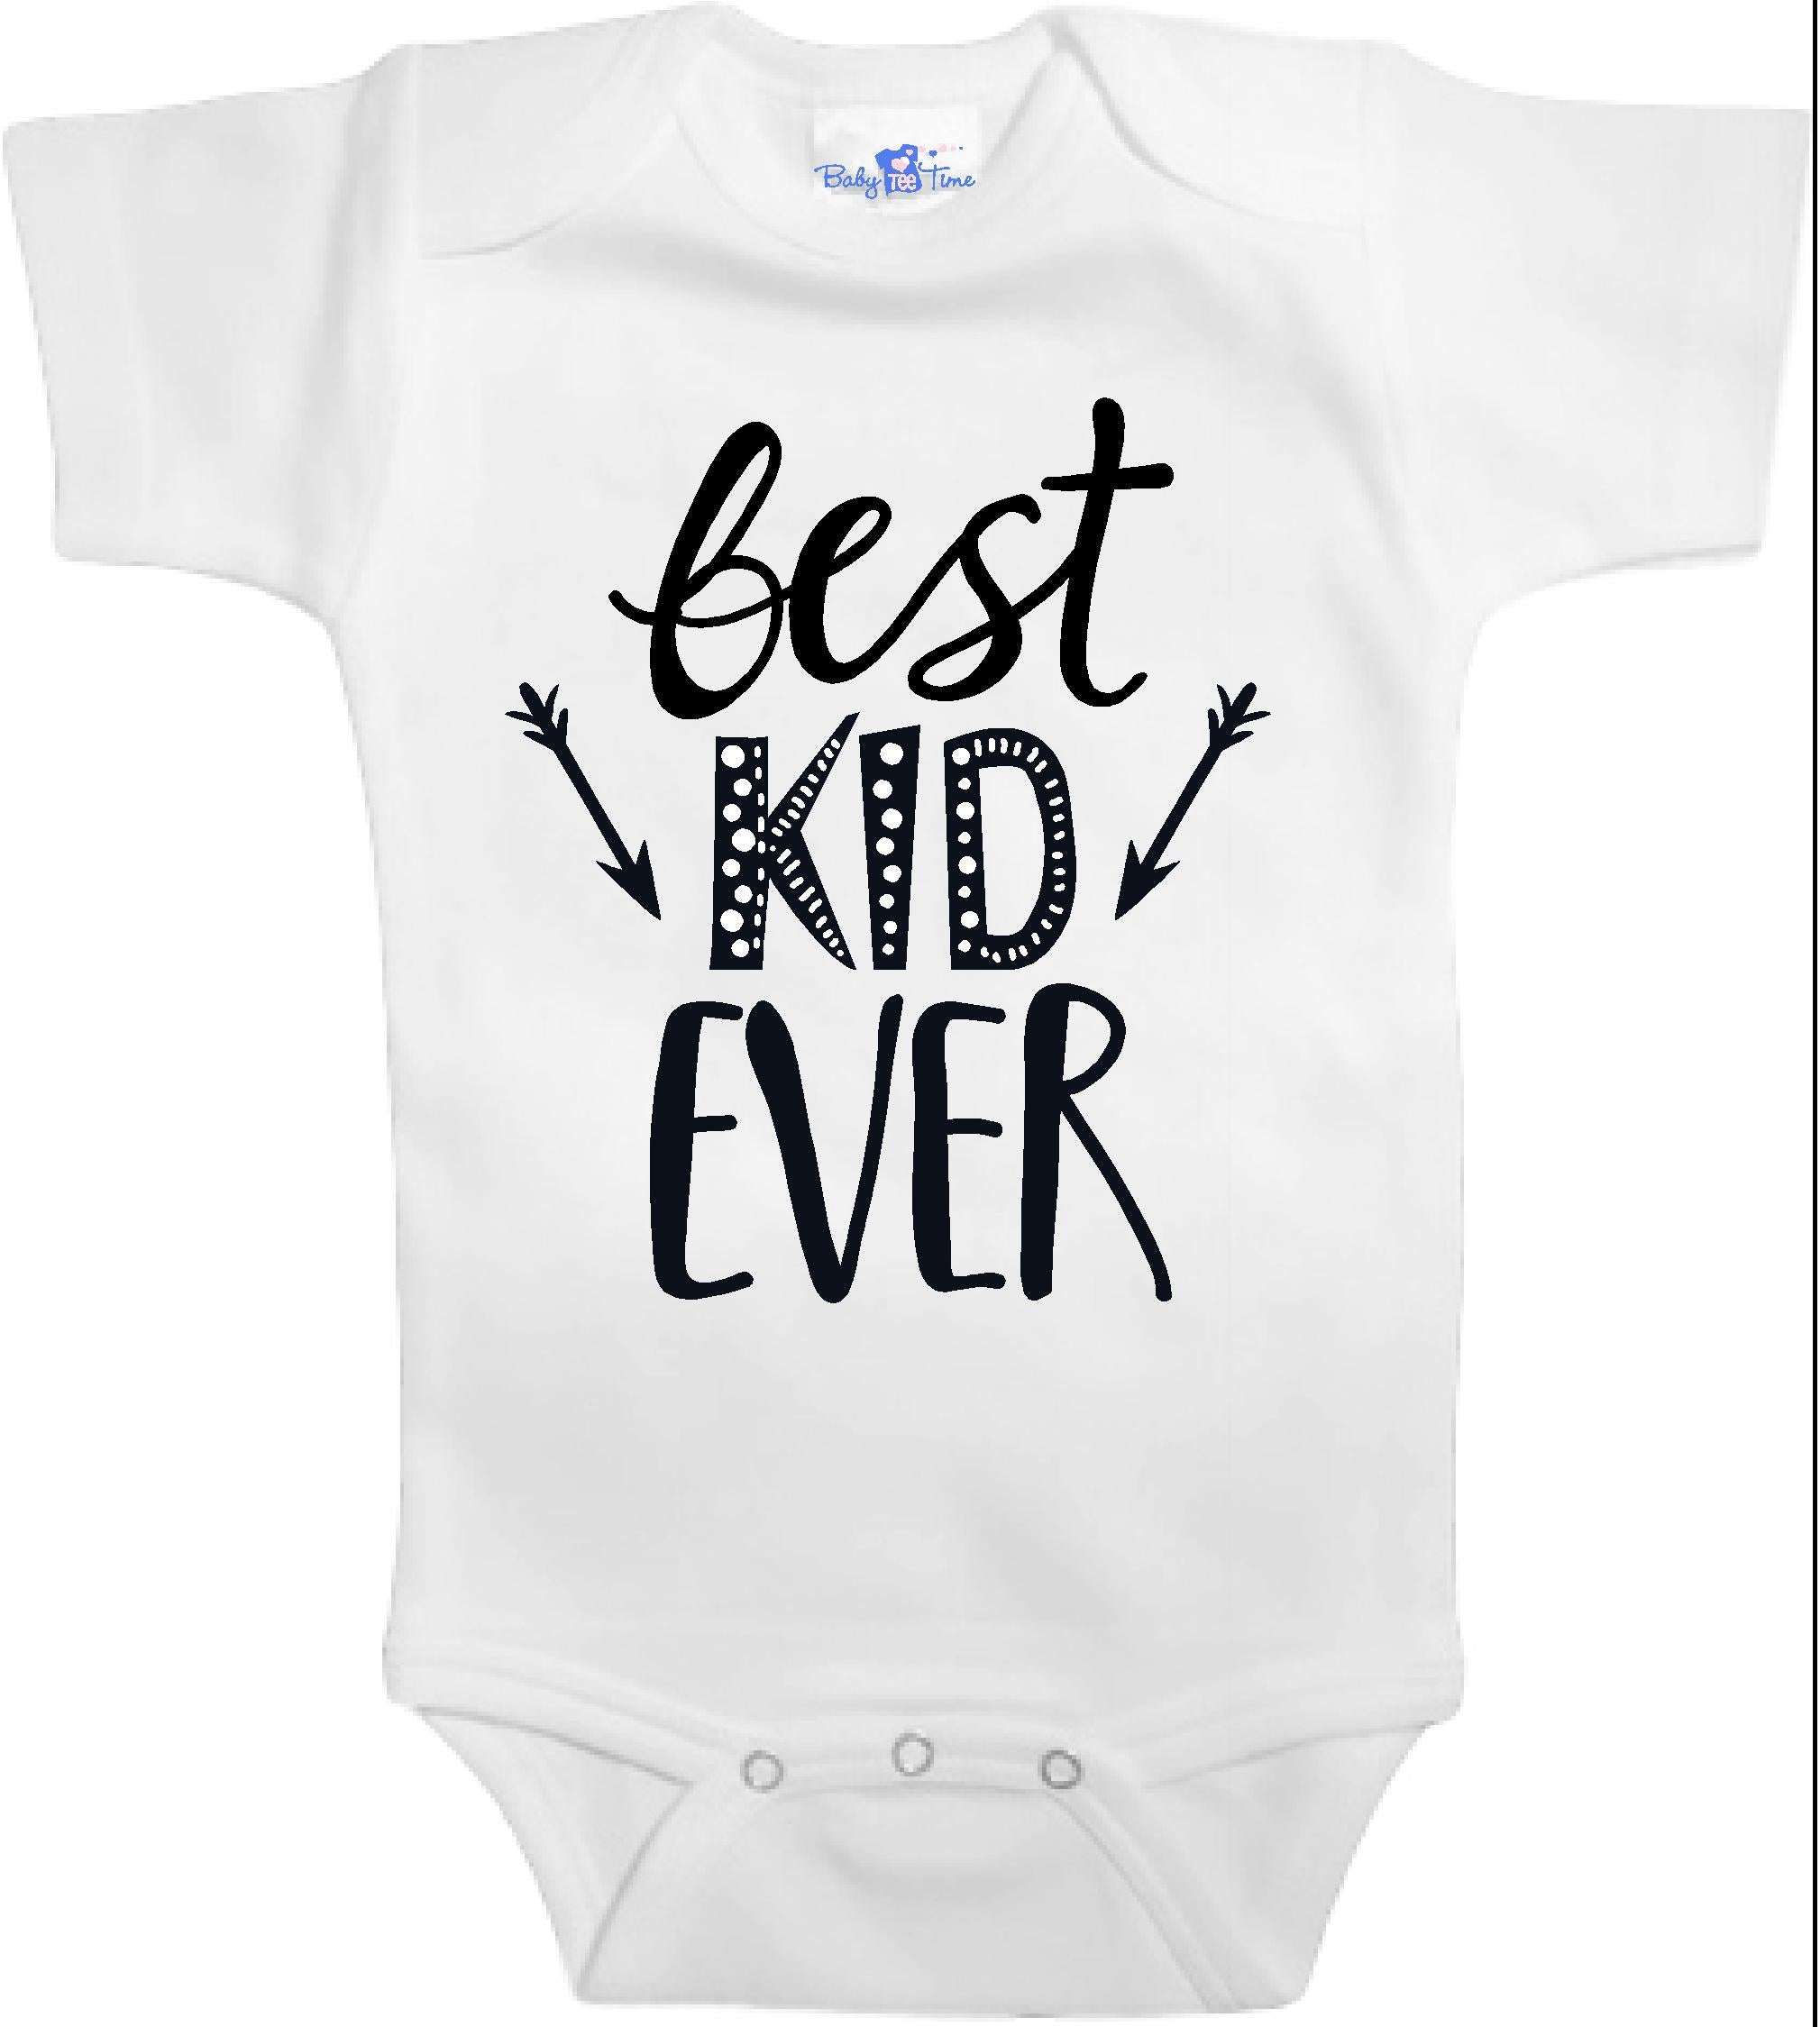 Adorable Baby Tee Time Best kid ever popular Baby clothes